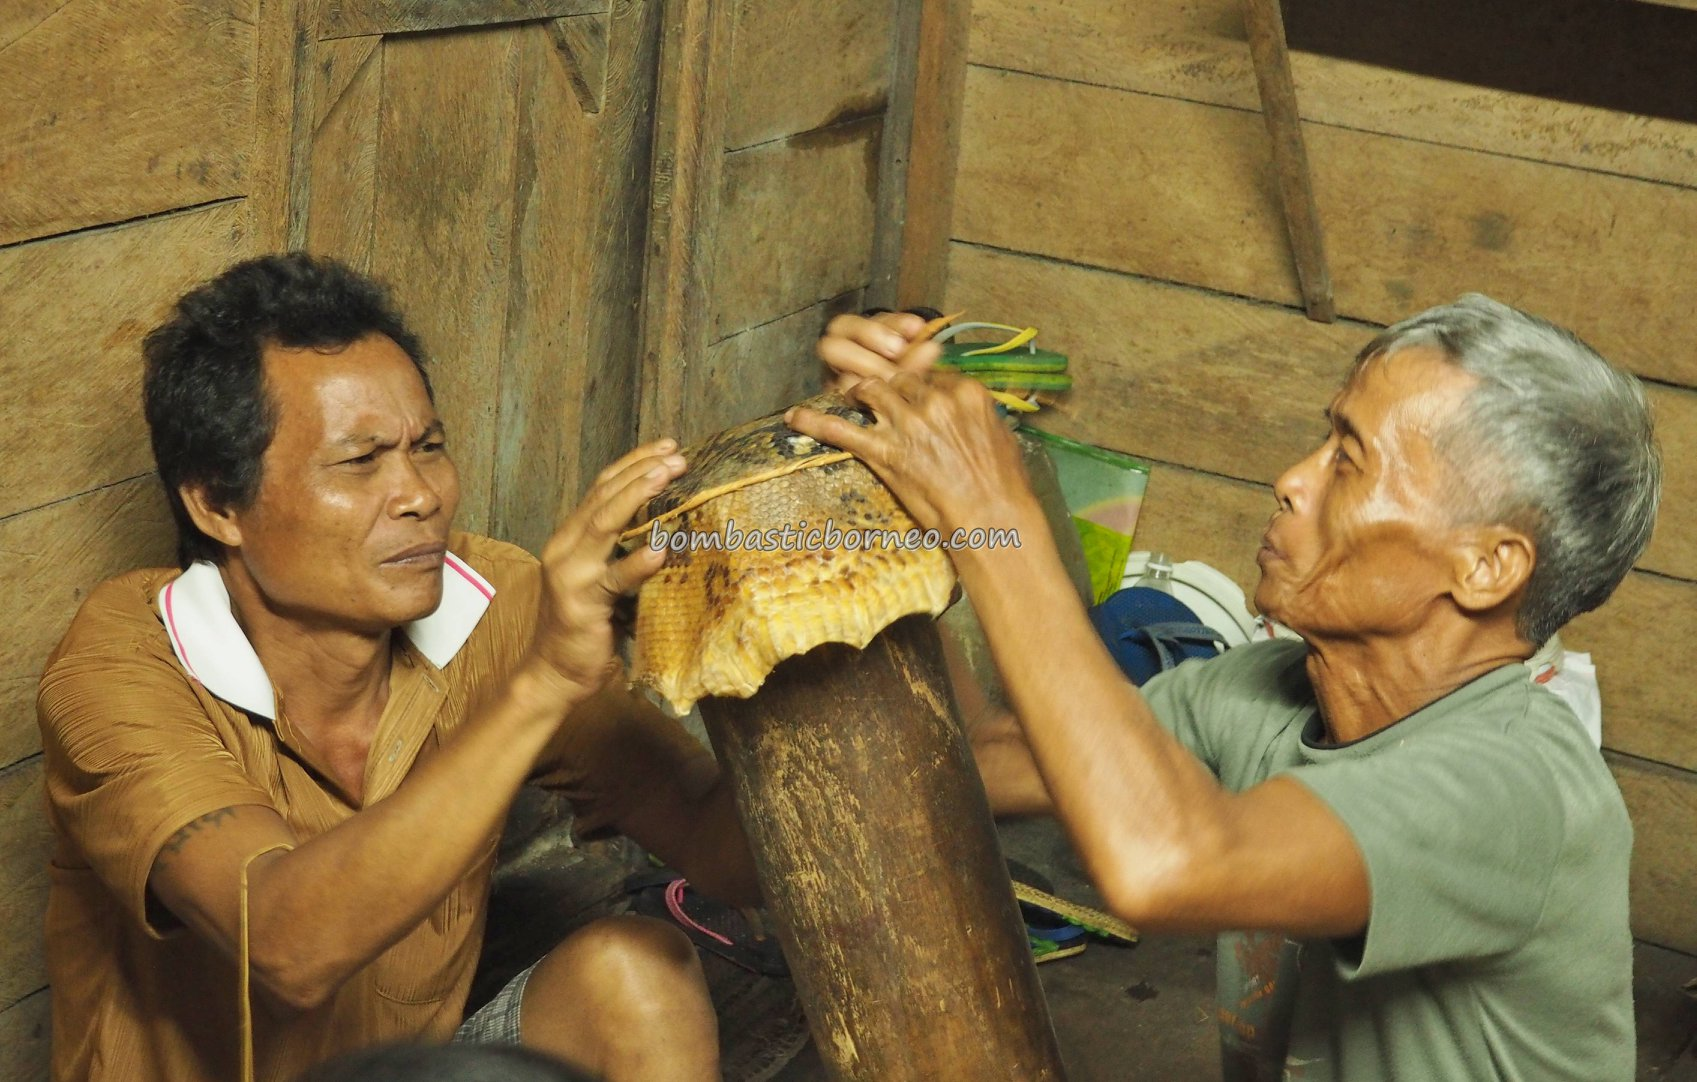 ritual, authentic, traditional, Ethnic, Dayak Bidayuh, native, tribe, Kuching, Malaysia, village, travel, Borneo, 马来西亚砂拉越, 石隆门土著部落,